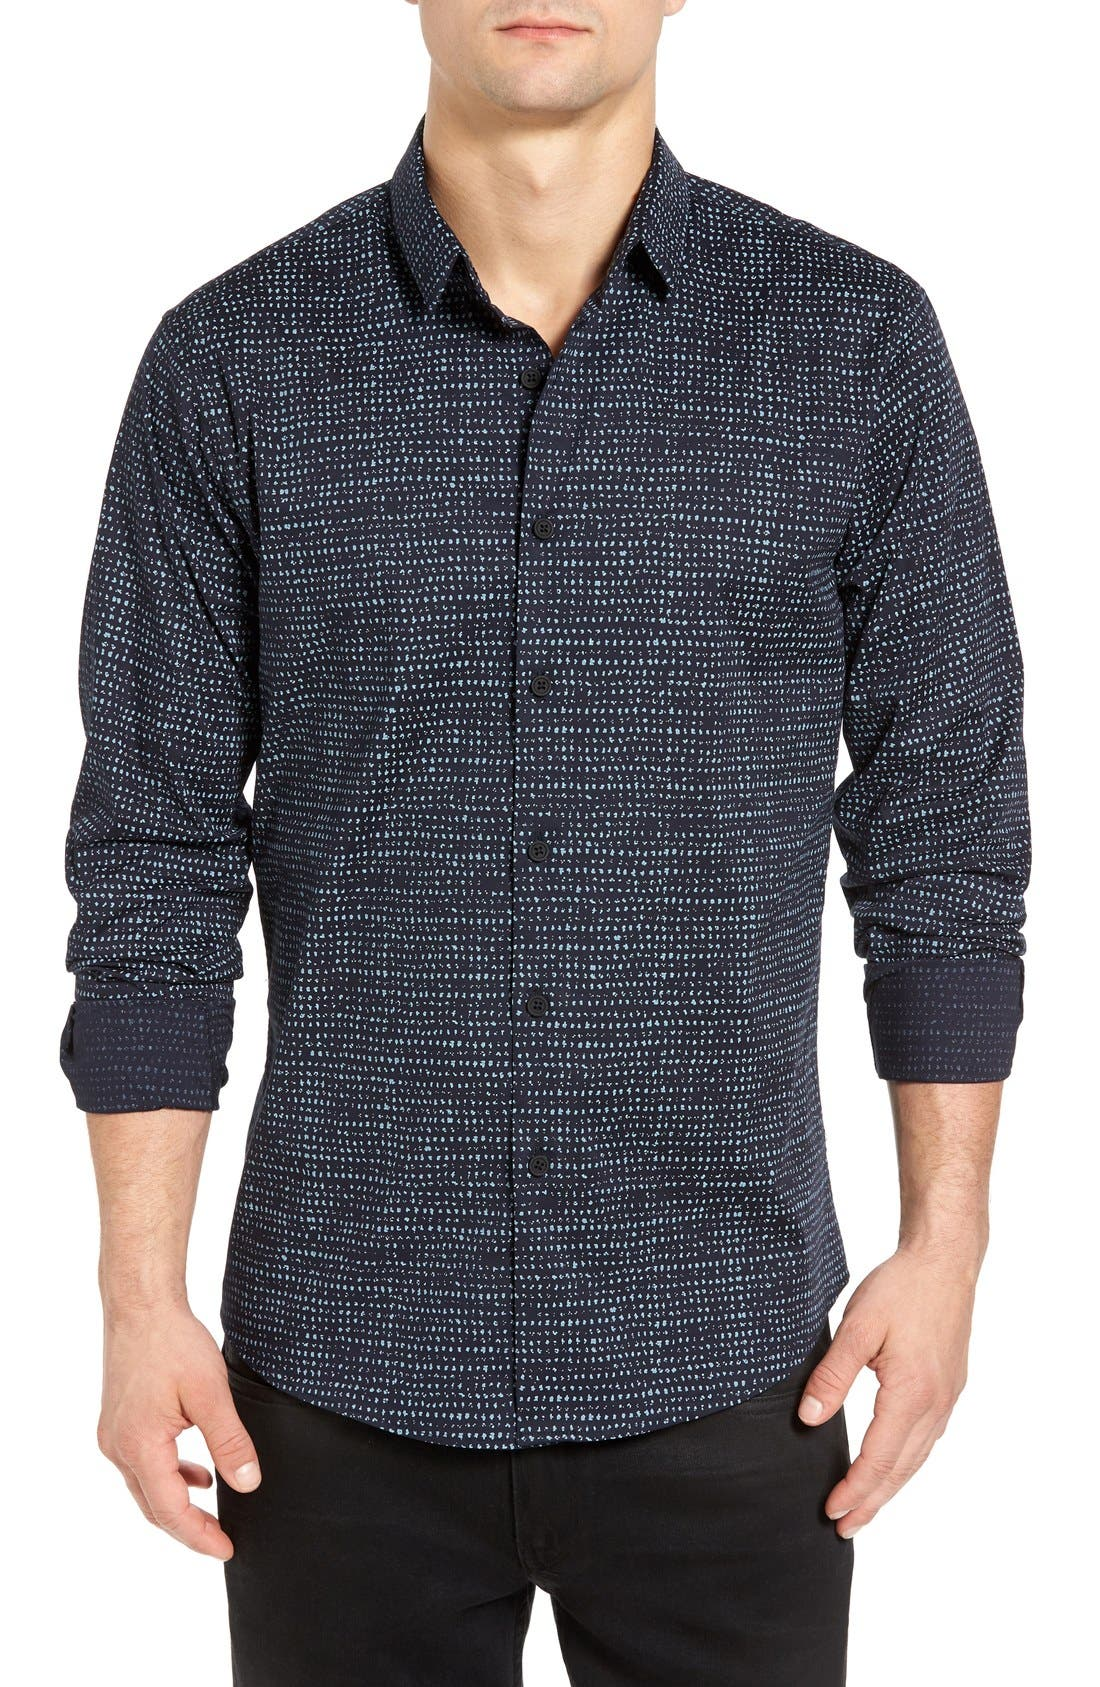 Alternate Image 1 Selected - 7 Diamonds Rear View Slim Fit Woven Shirt